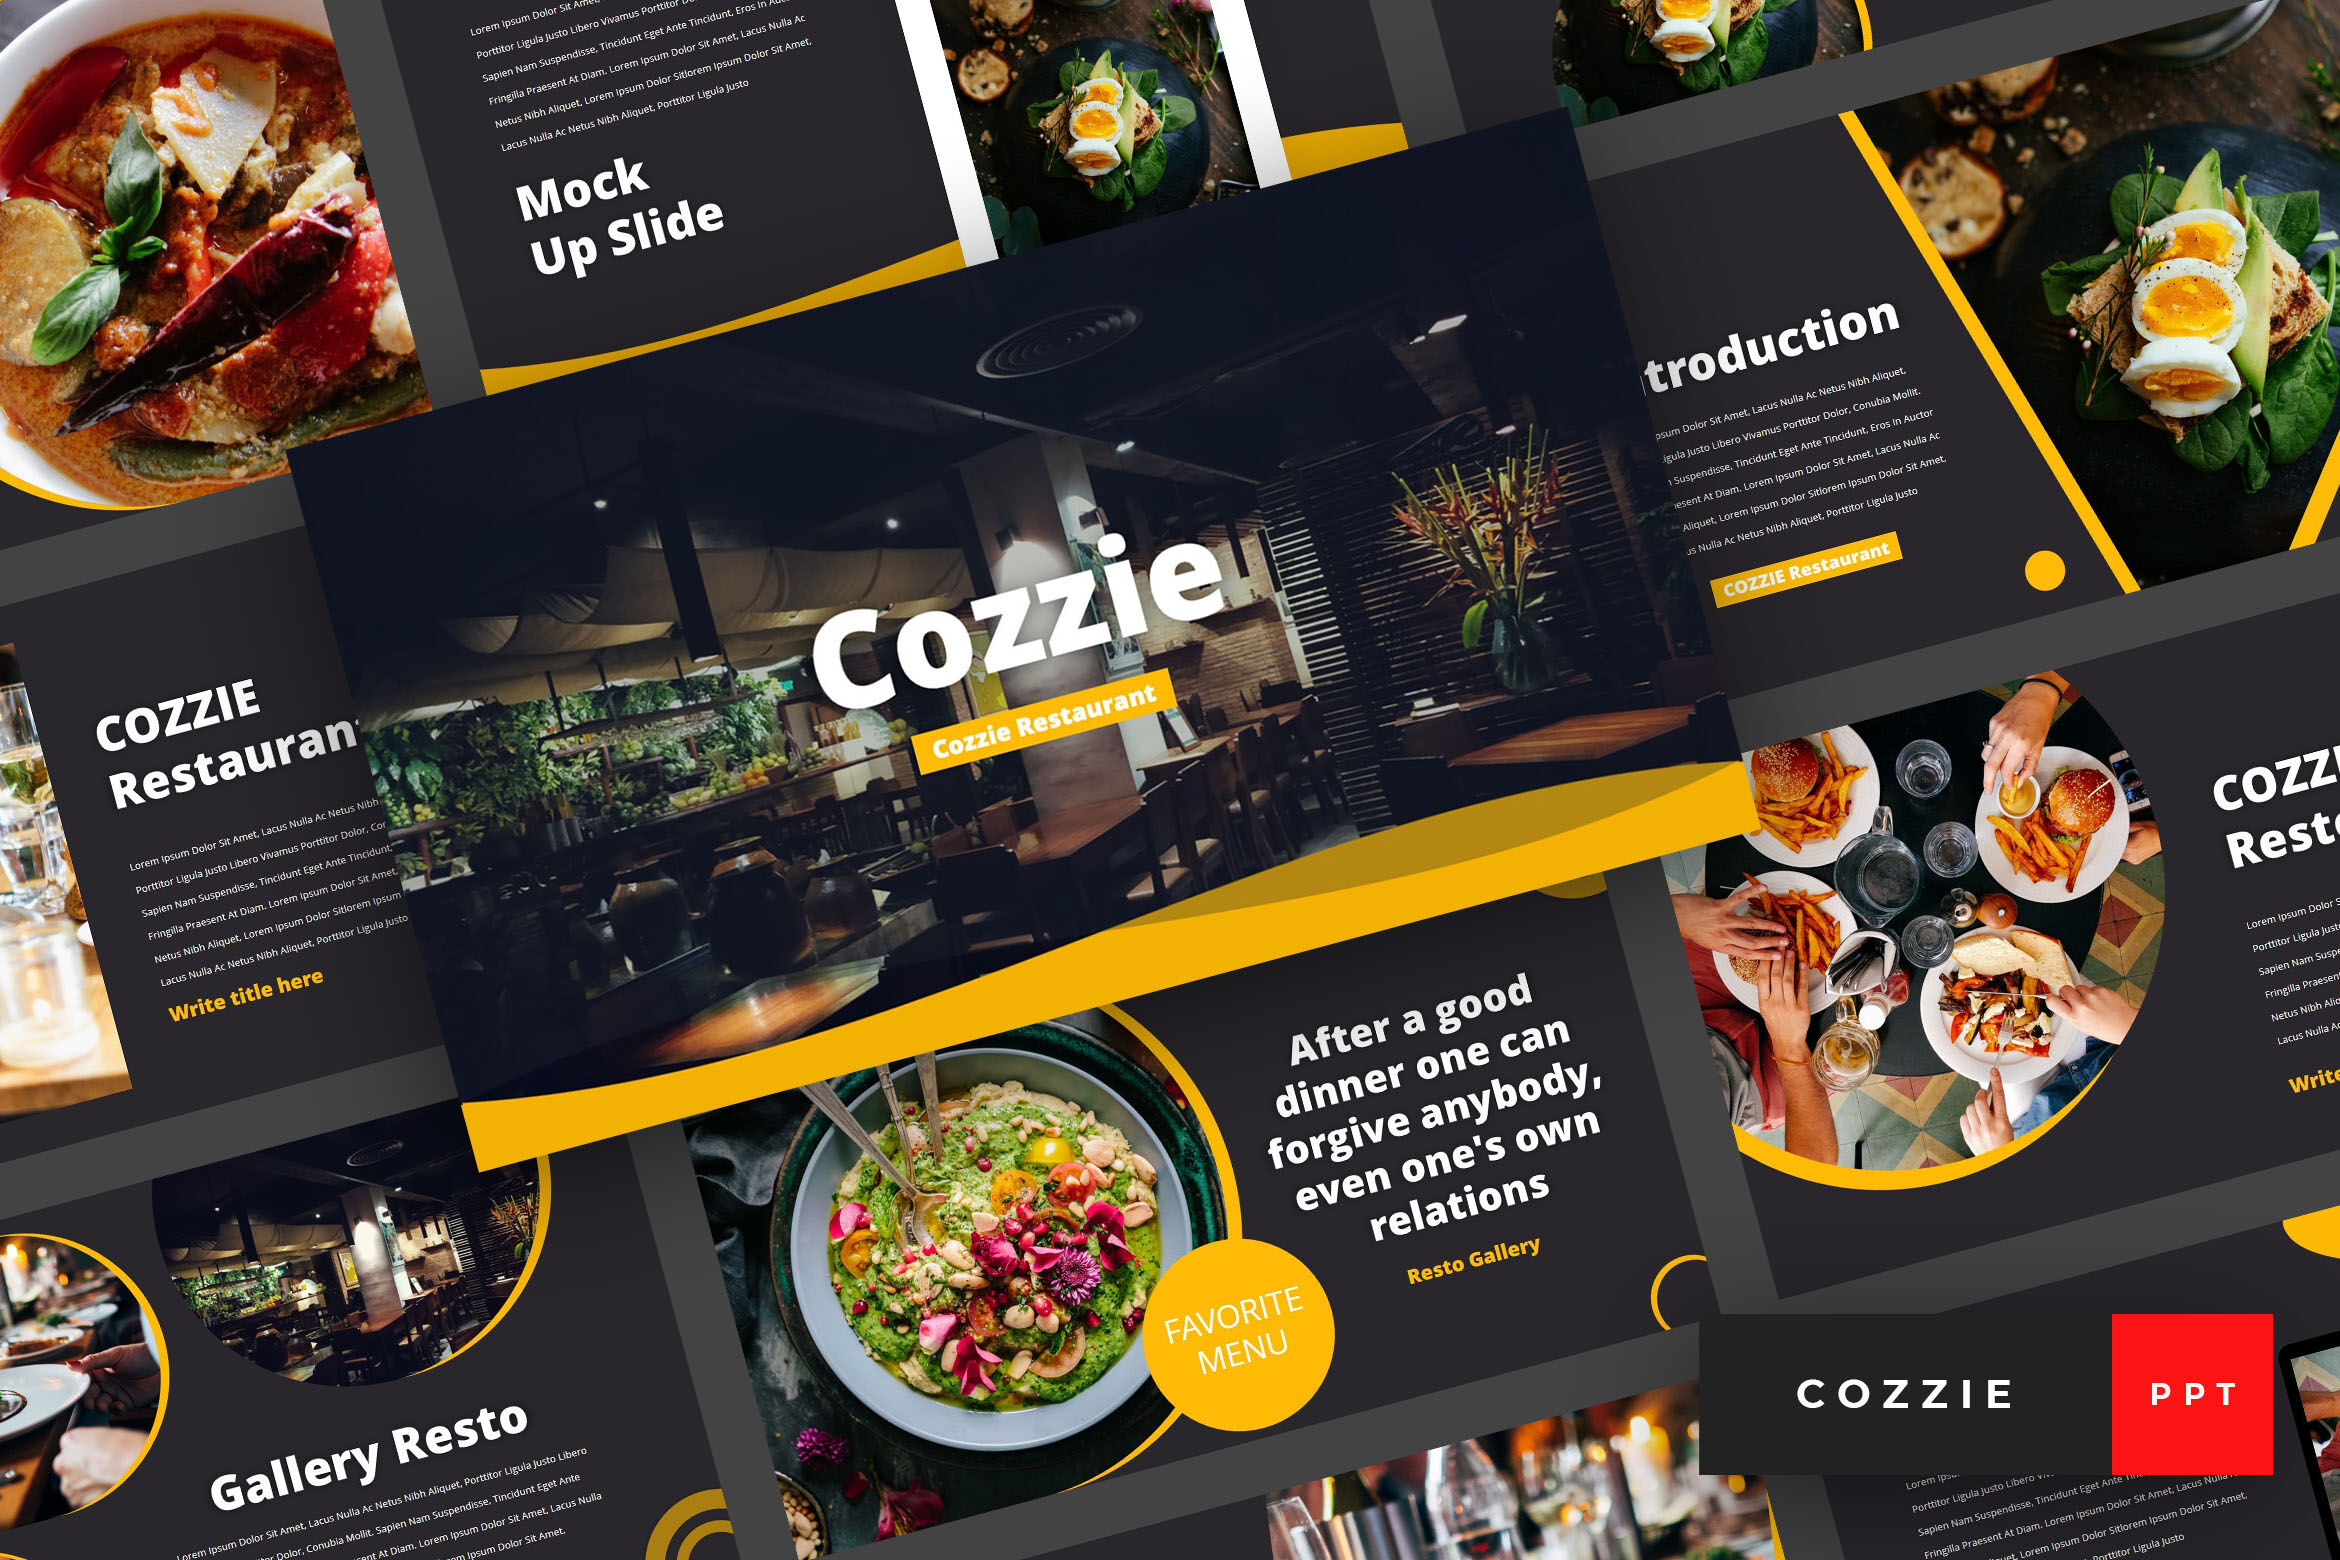 Cozzie Restaurant Powerpoint Template By Stringlabs